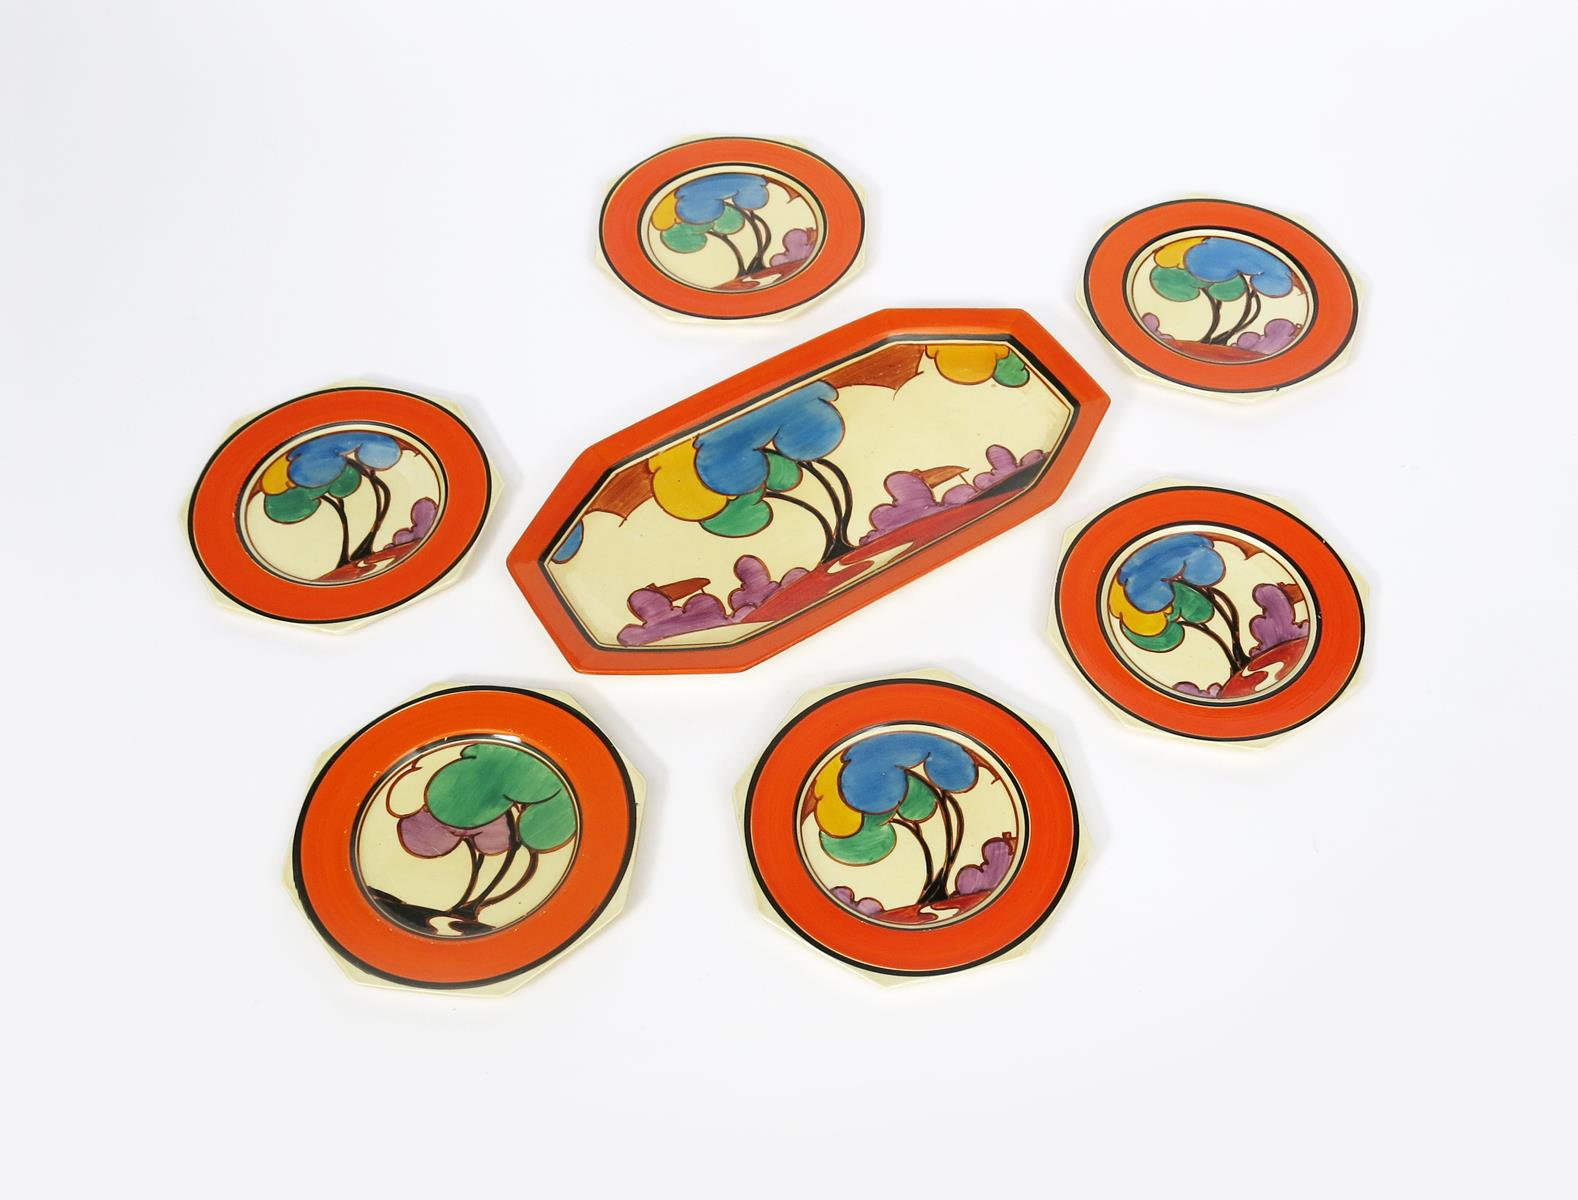 'Autumn' a Clarice Cliff Fantasque Bizarre Octagonal sandwich set for six, comprising tray and six - Image 2 of 2